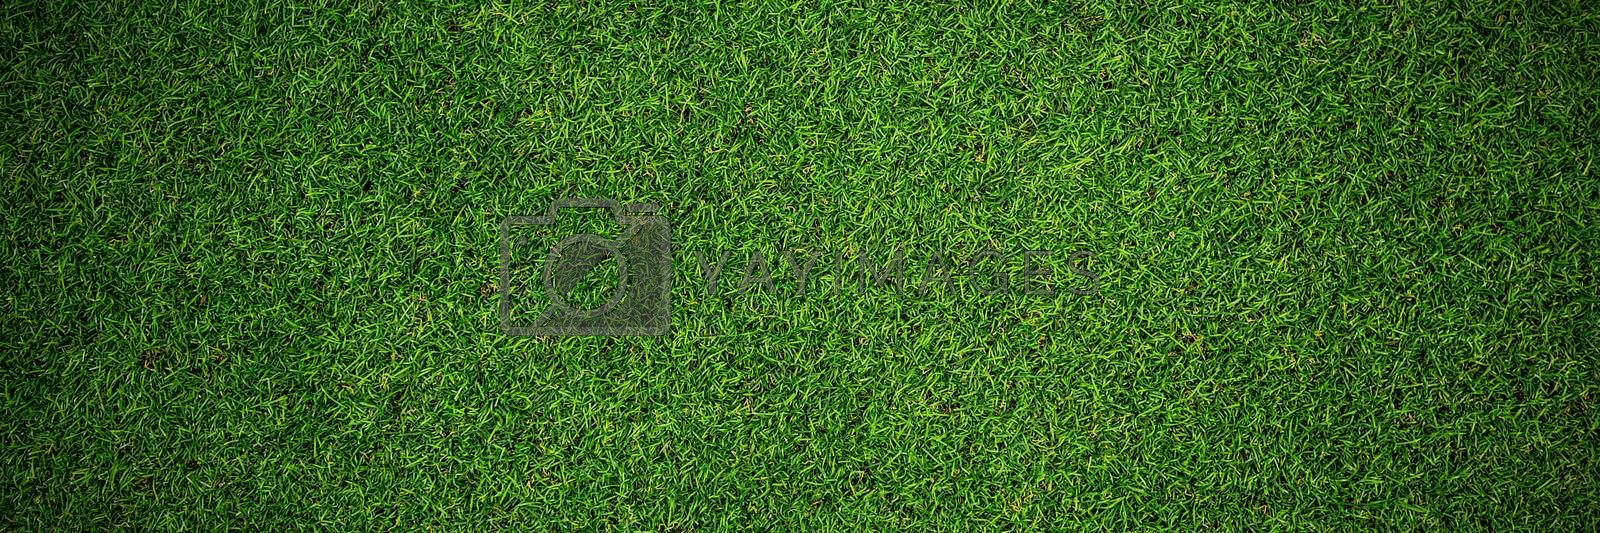 Close up view of astro turf by Wavebreakmedia